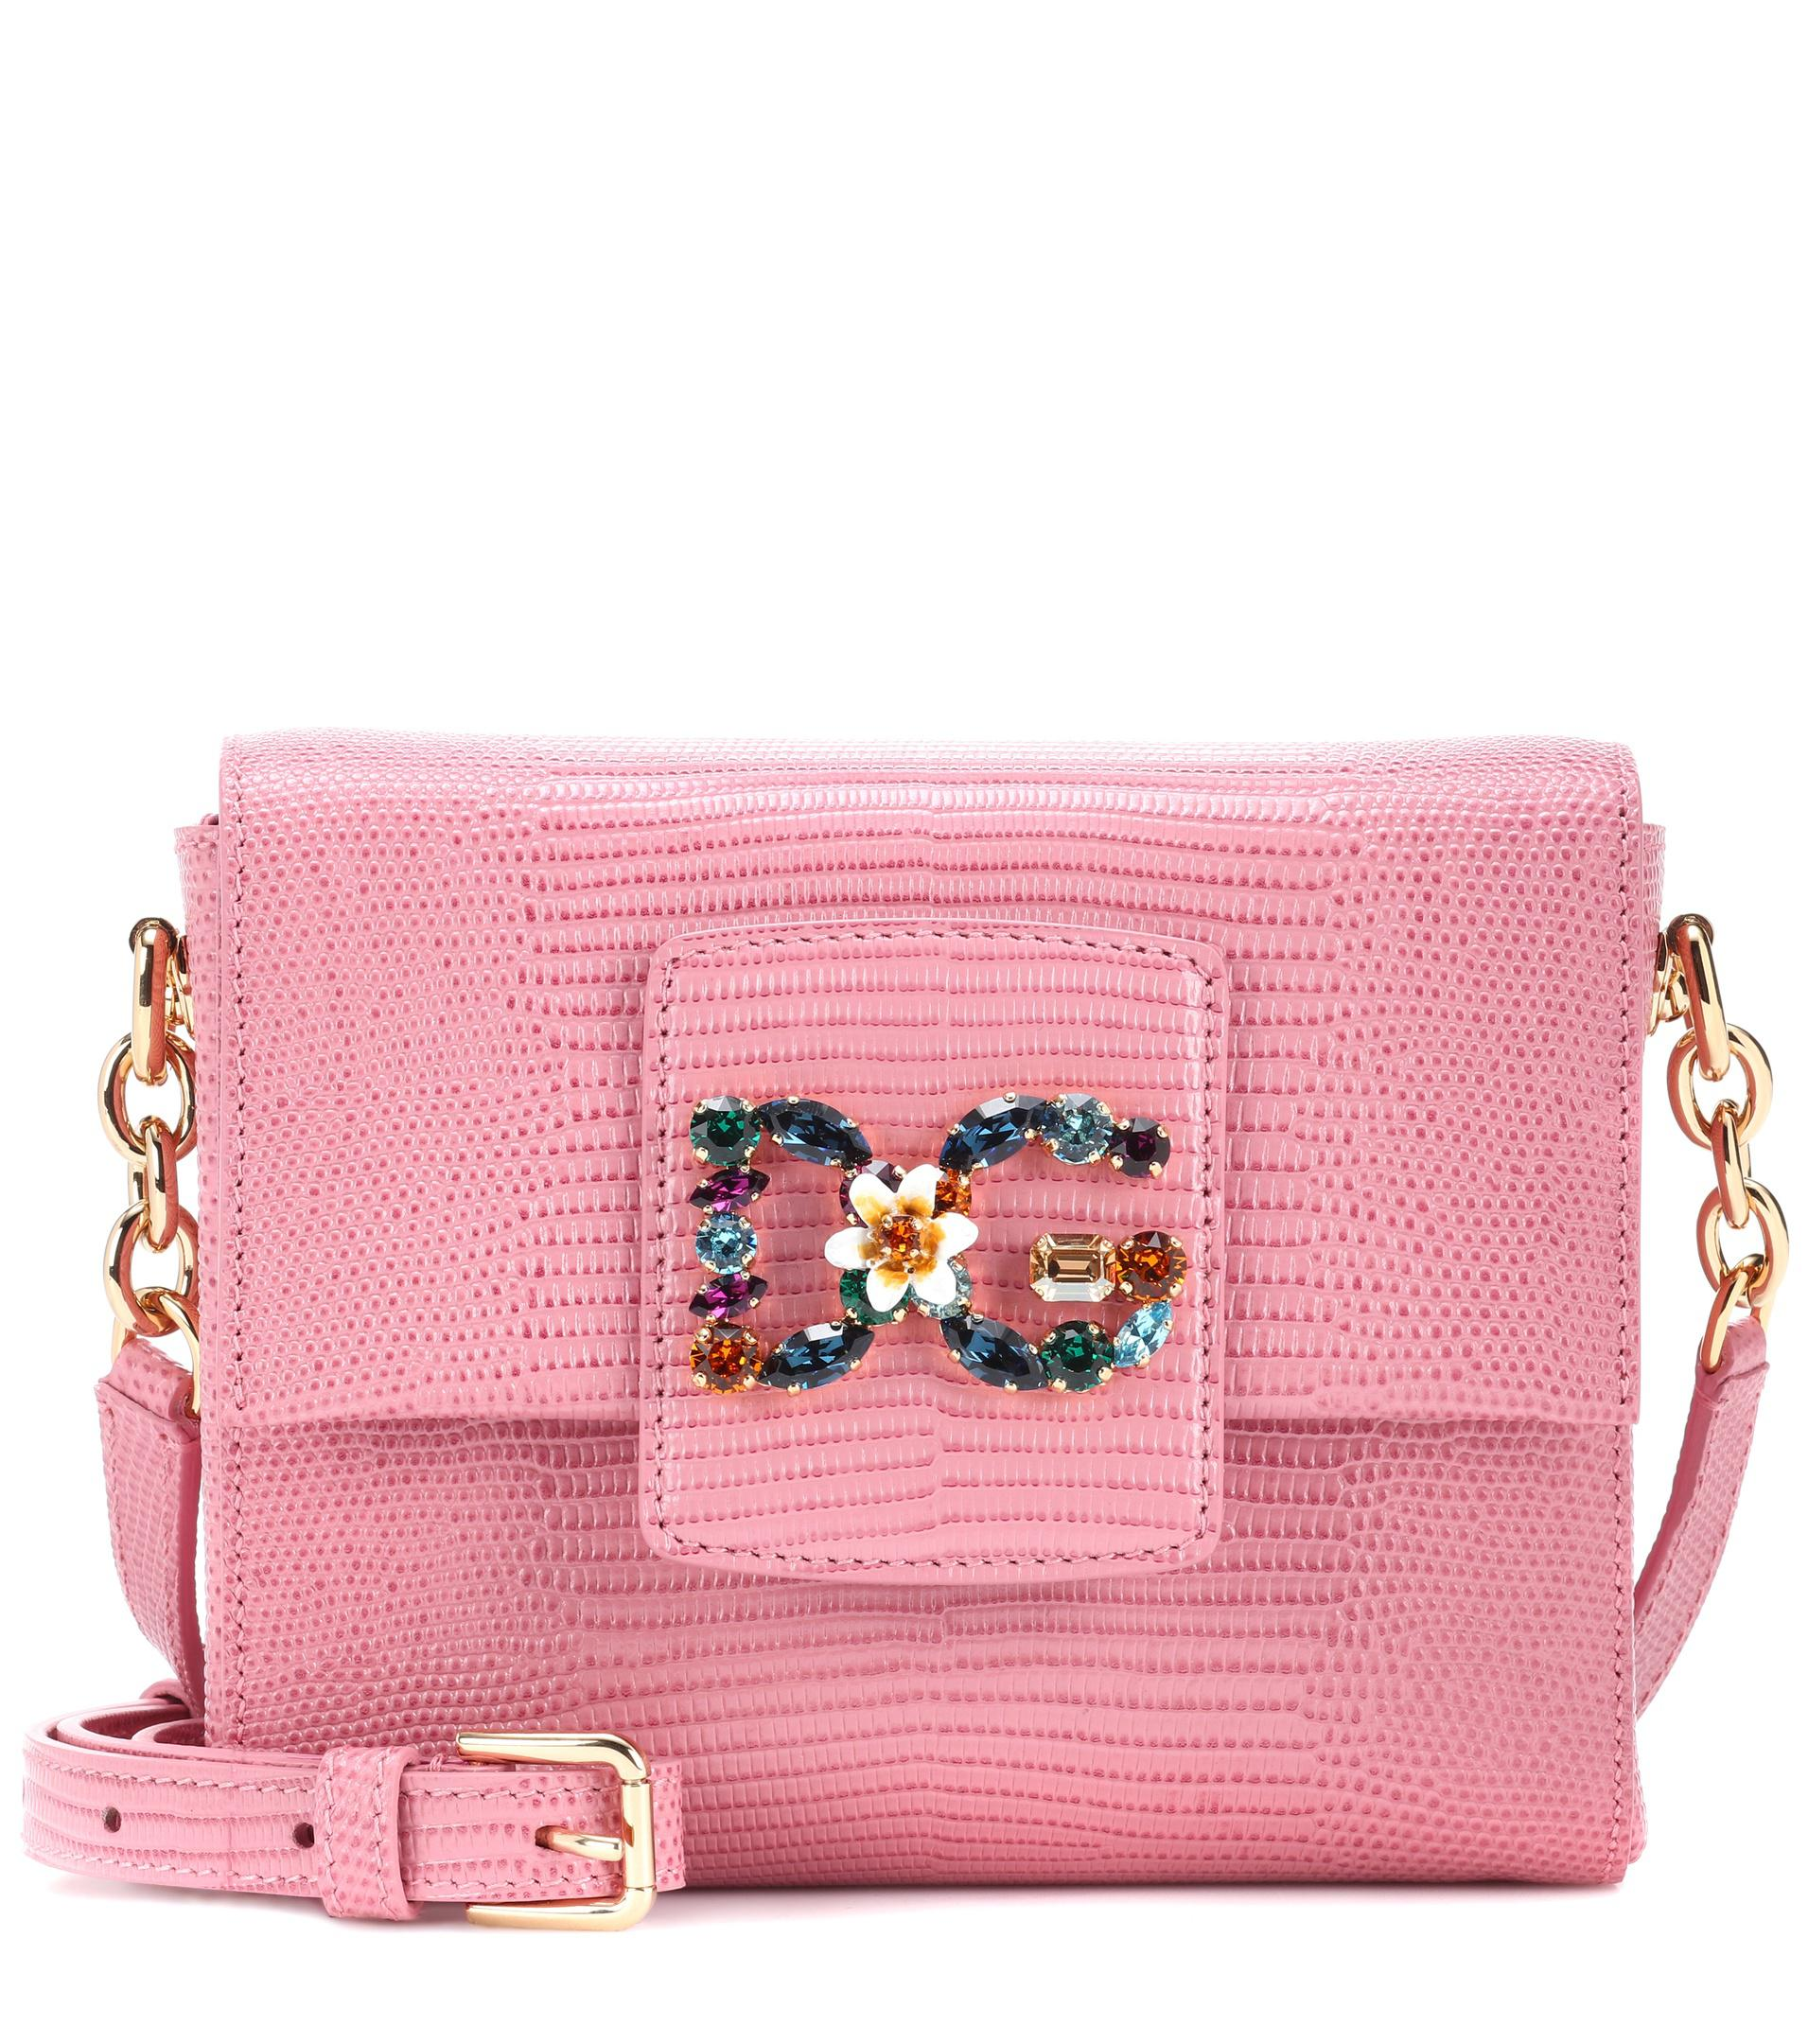 e2c3eb9fb9 Dolce   Gabbana Dg Millennials Mini Leather Shoulder Bag in Pink - Lyst